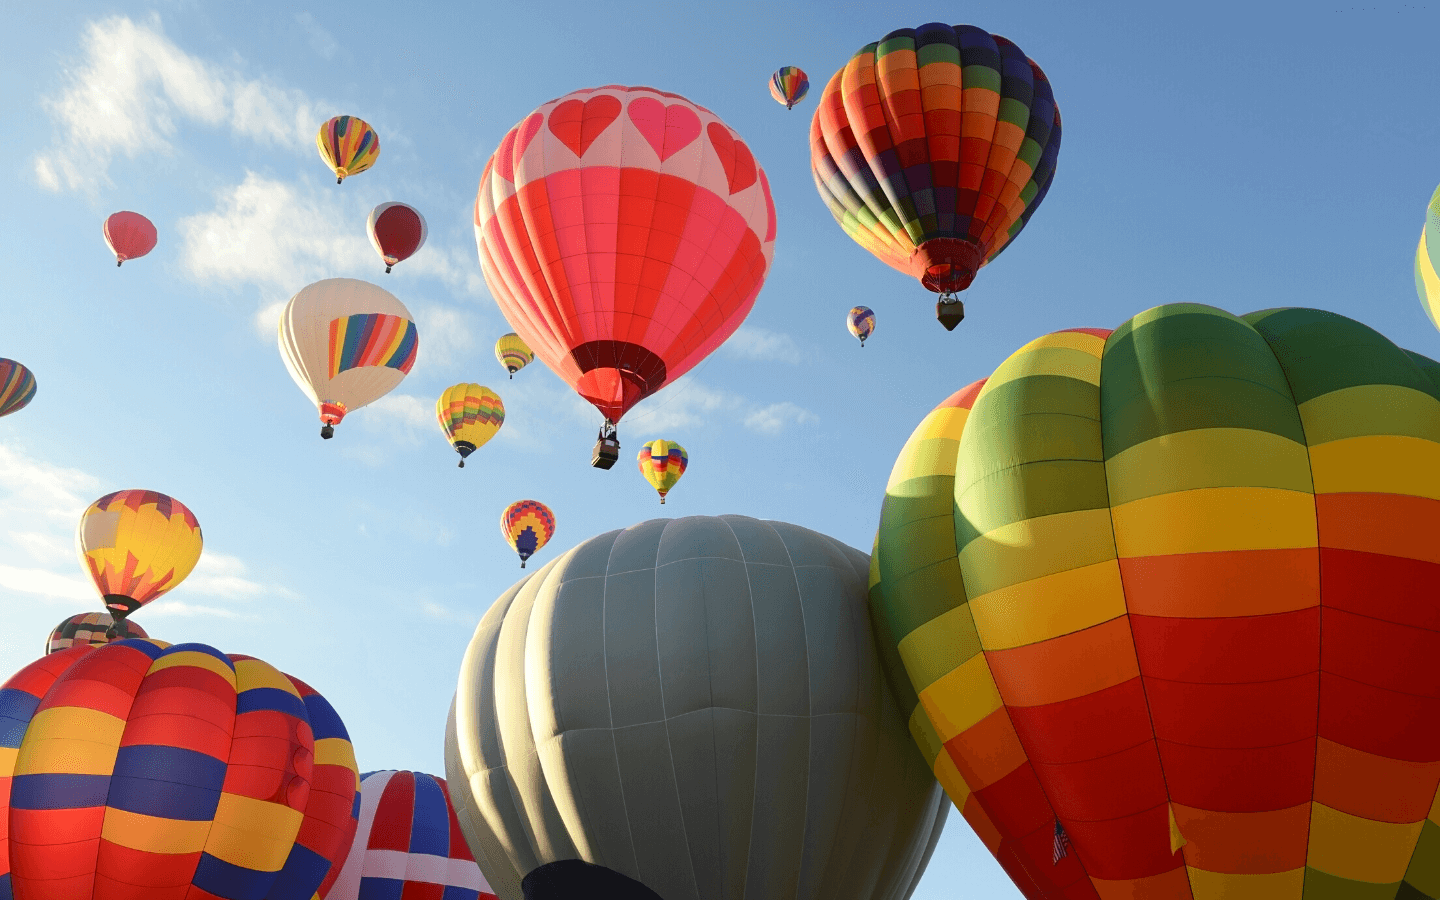 Colorful hot air balloons rising into the sky.